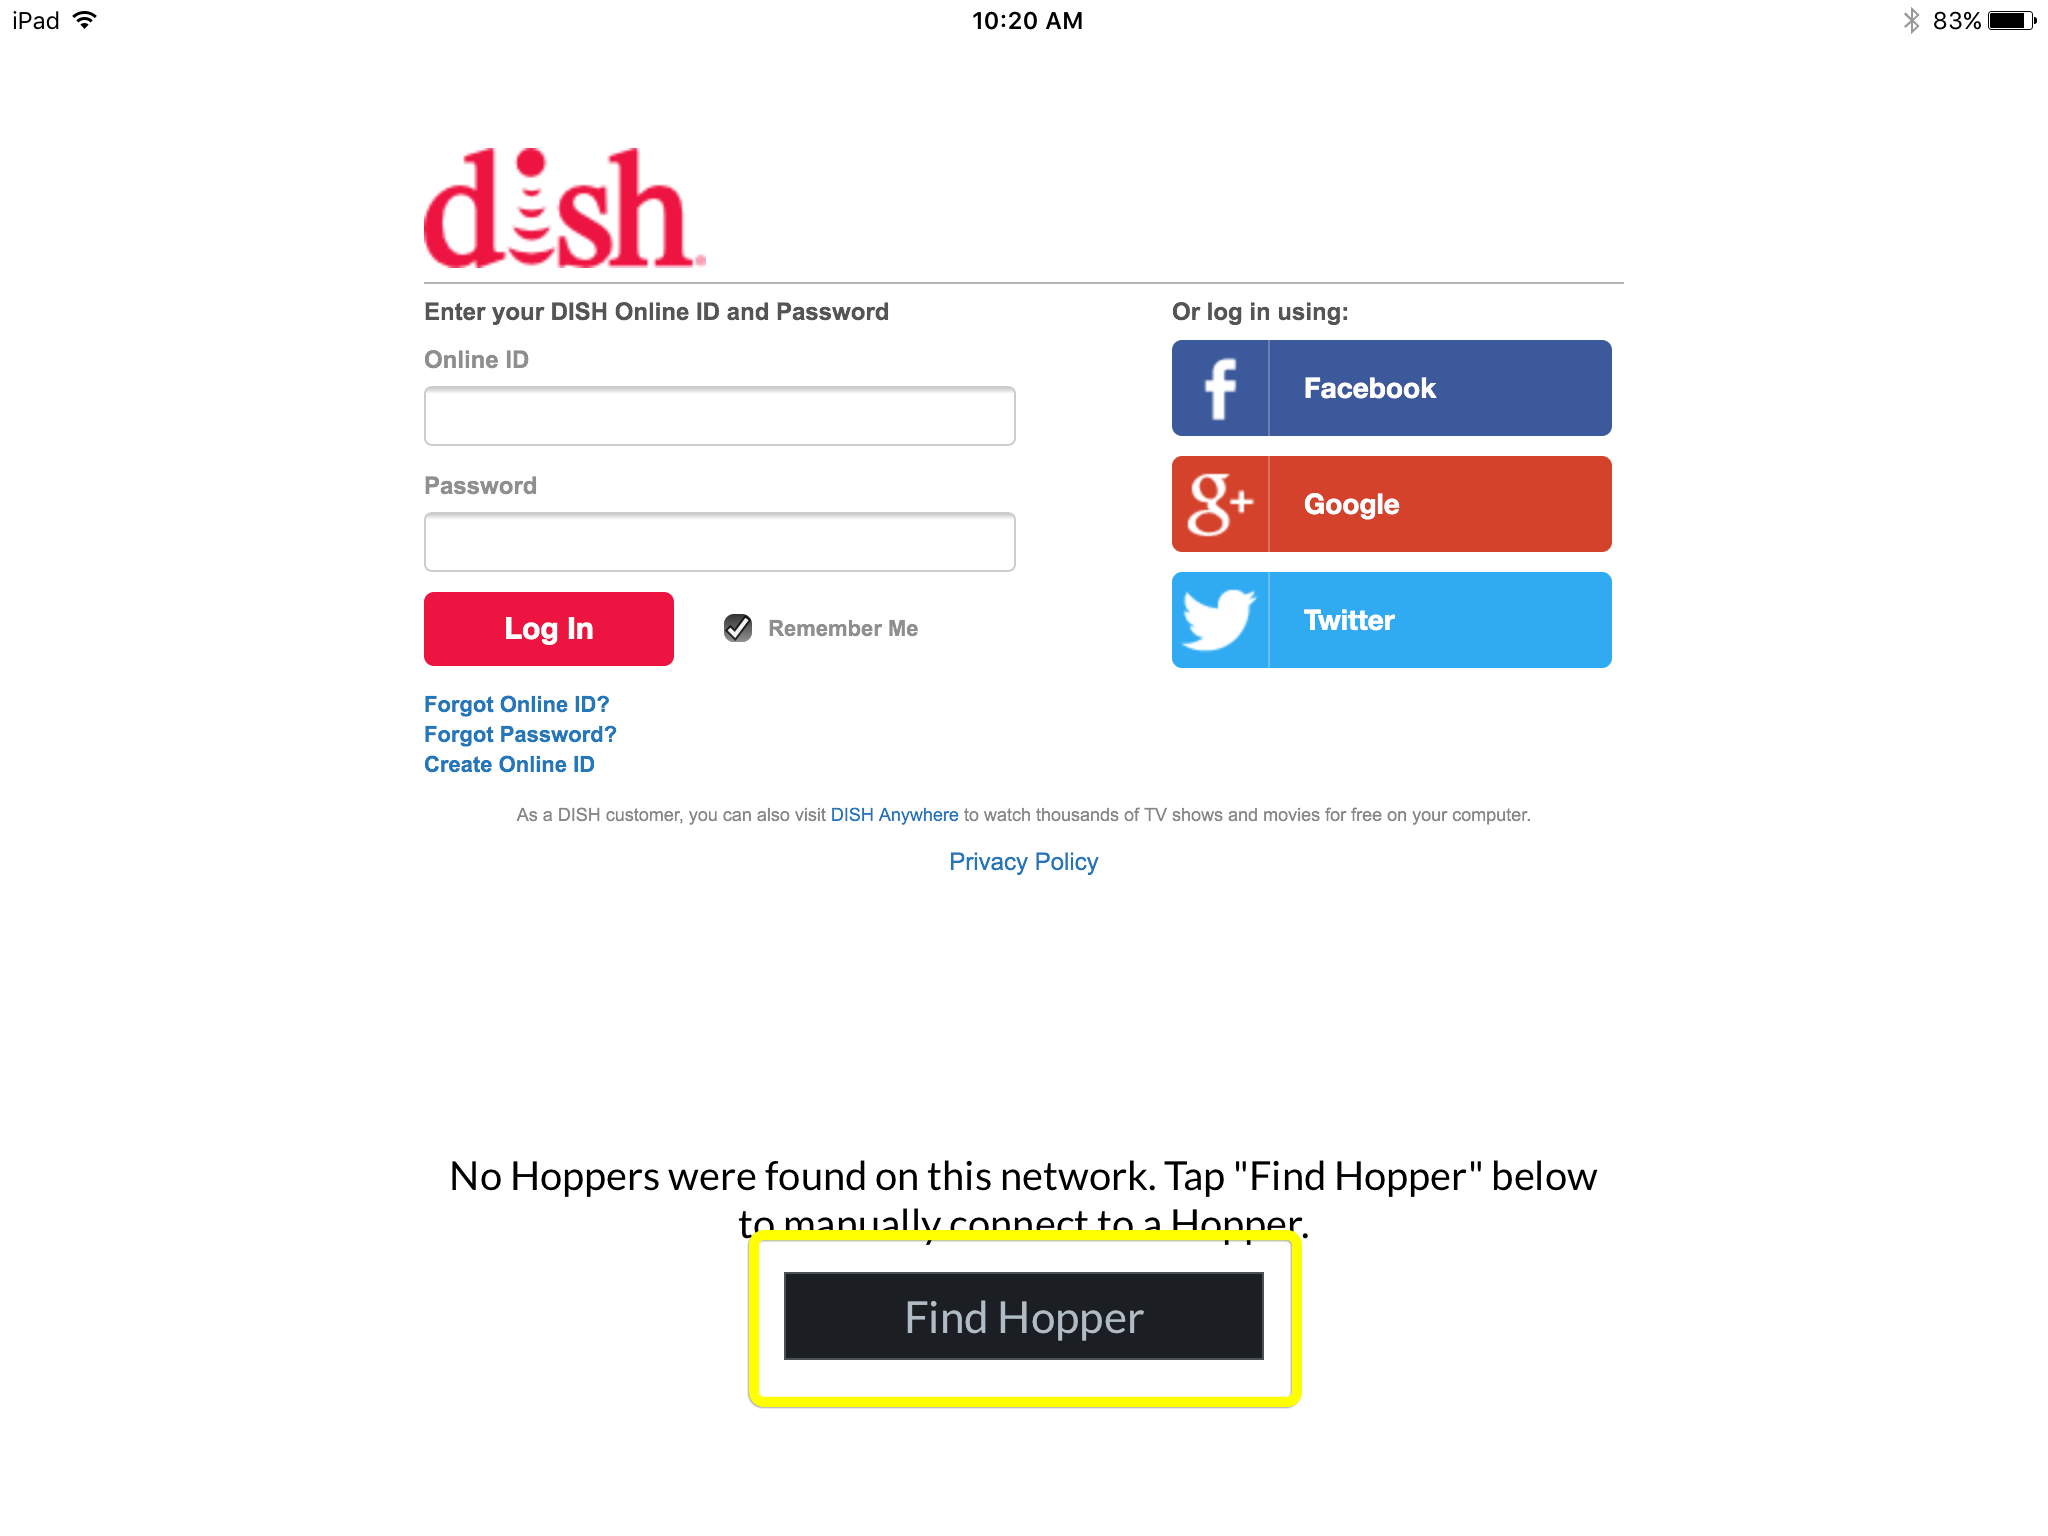 Dishanywhere log in and out mydish dish customer support pairing to hopper kristyandbryce Images